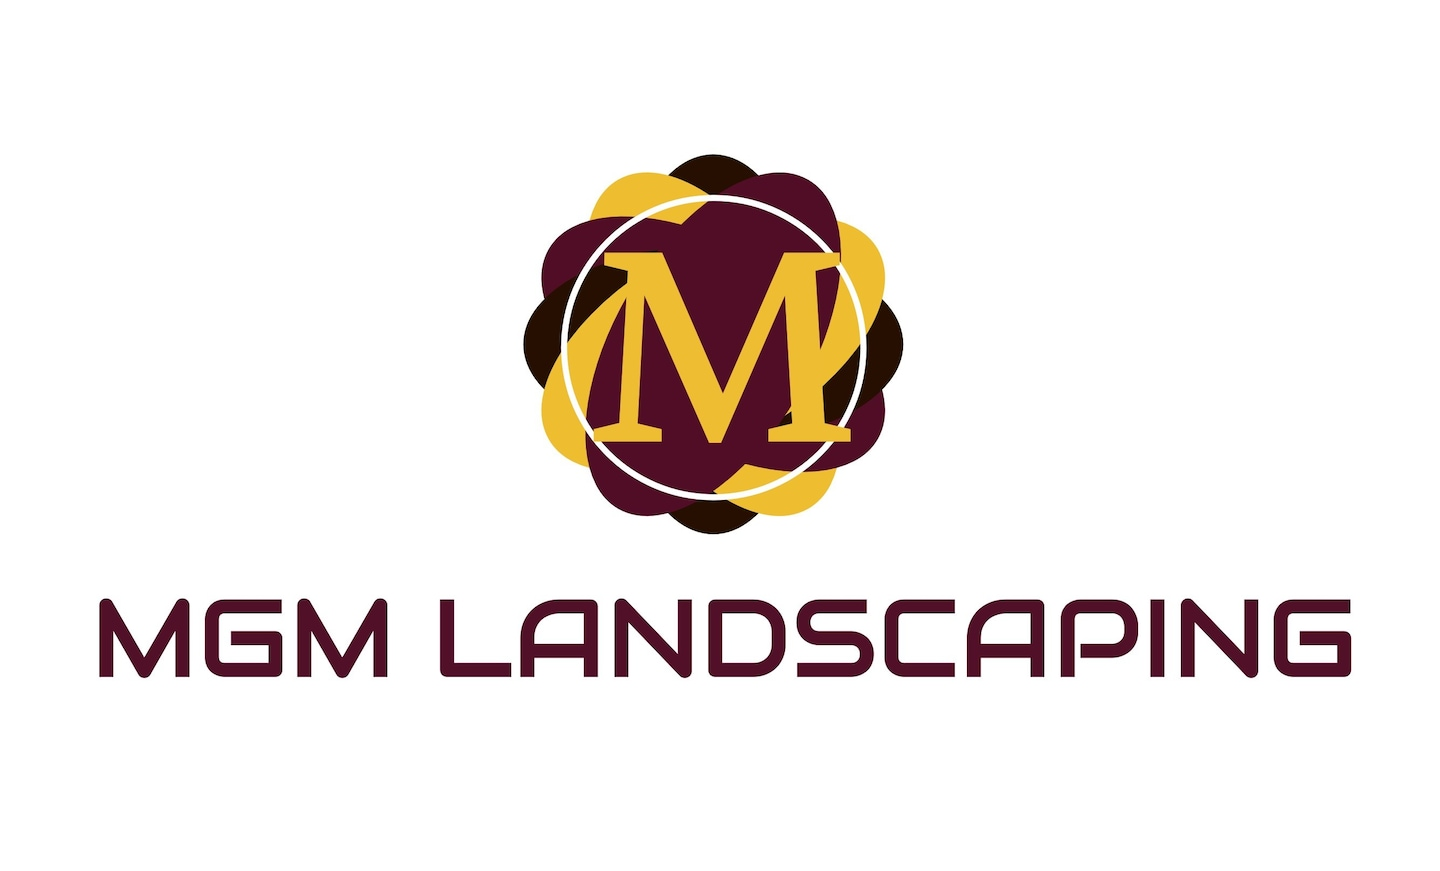 MGM Landscaping